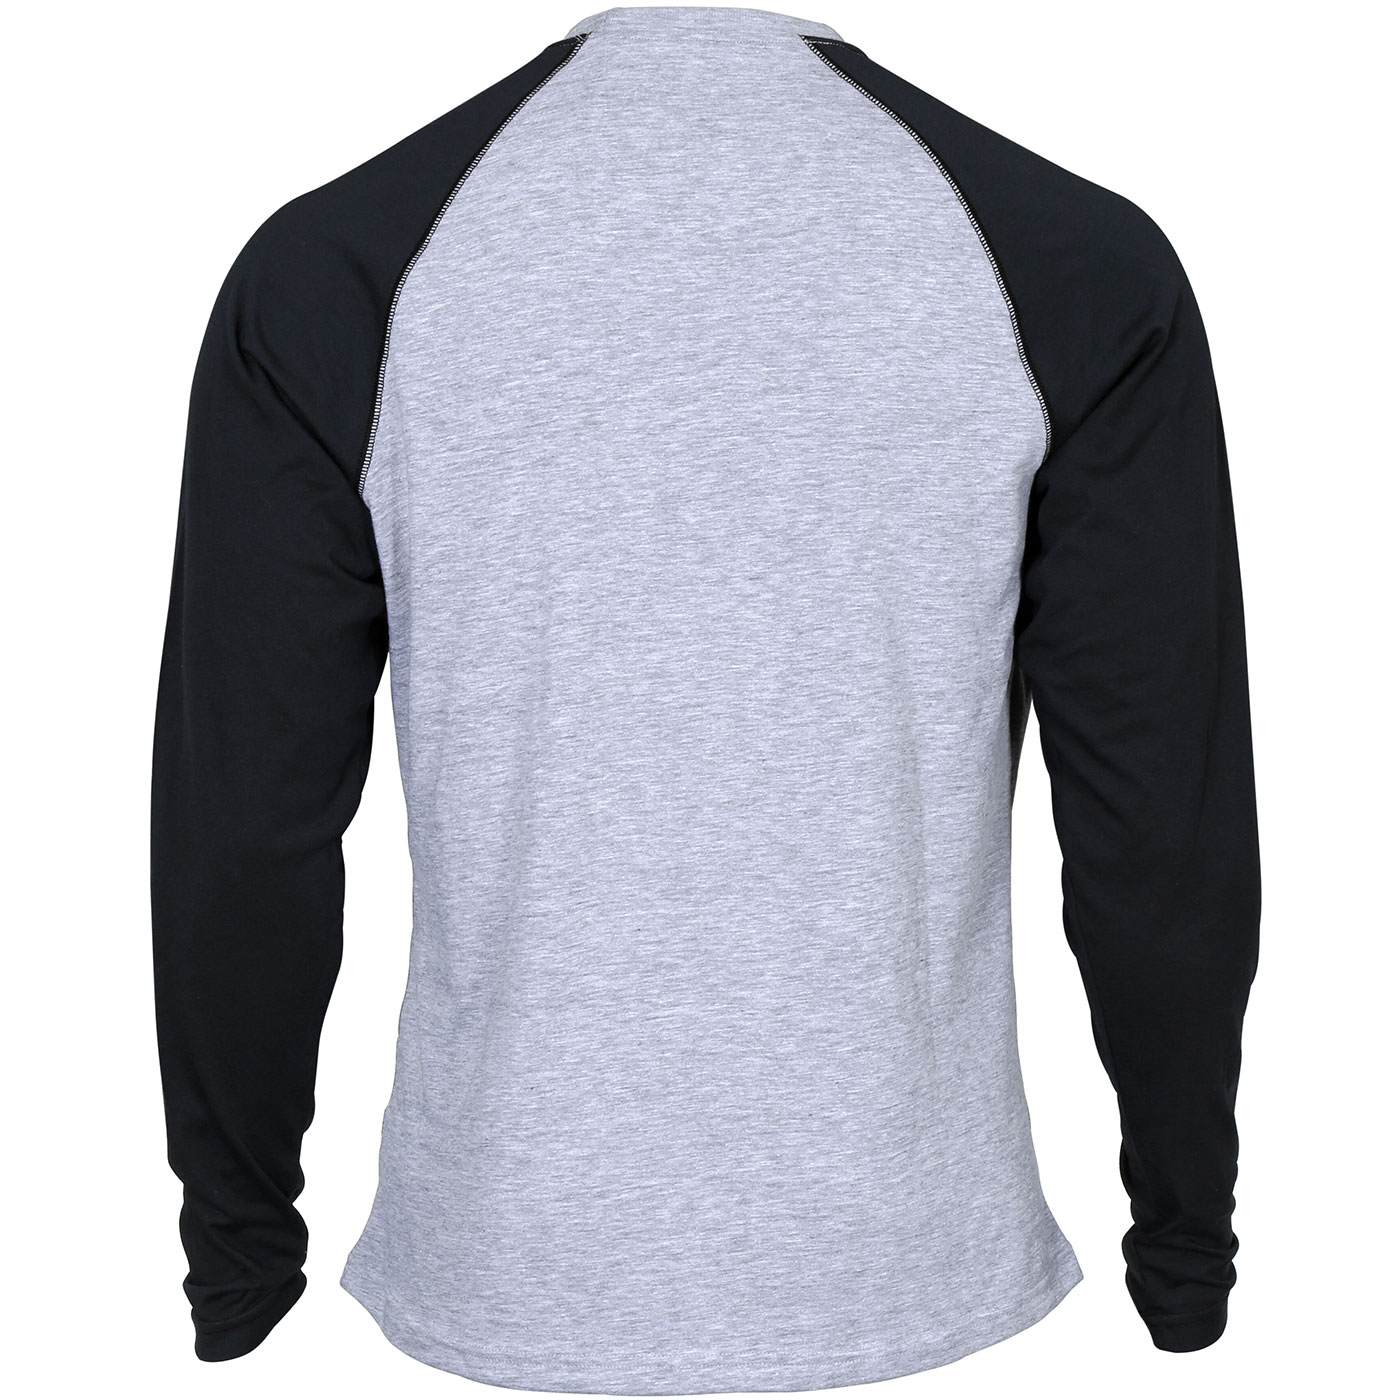 21f831647dc Rocky: Men's Logo Long-Sleeve Gray and Black Raglan T-Shirt